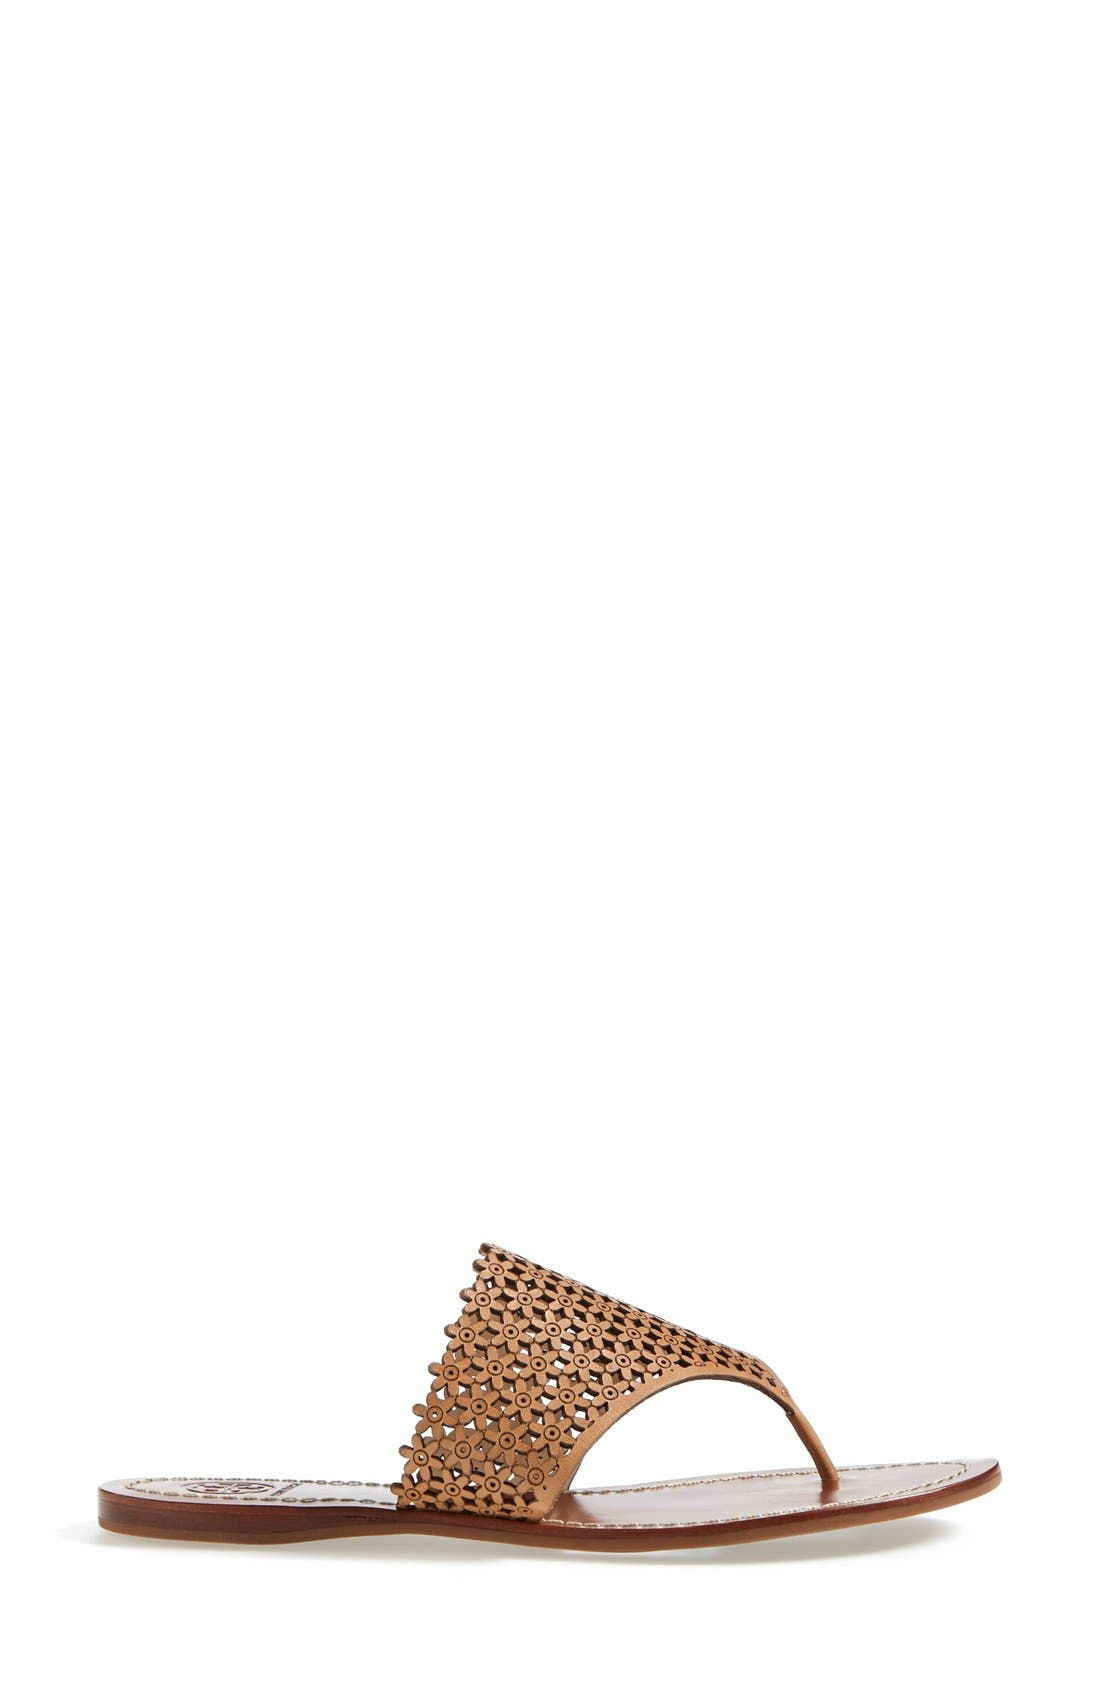 TORY BURCH,                             'Daisy' Perforated Sandal,                             Alternate thumbnail 3, color,                             671